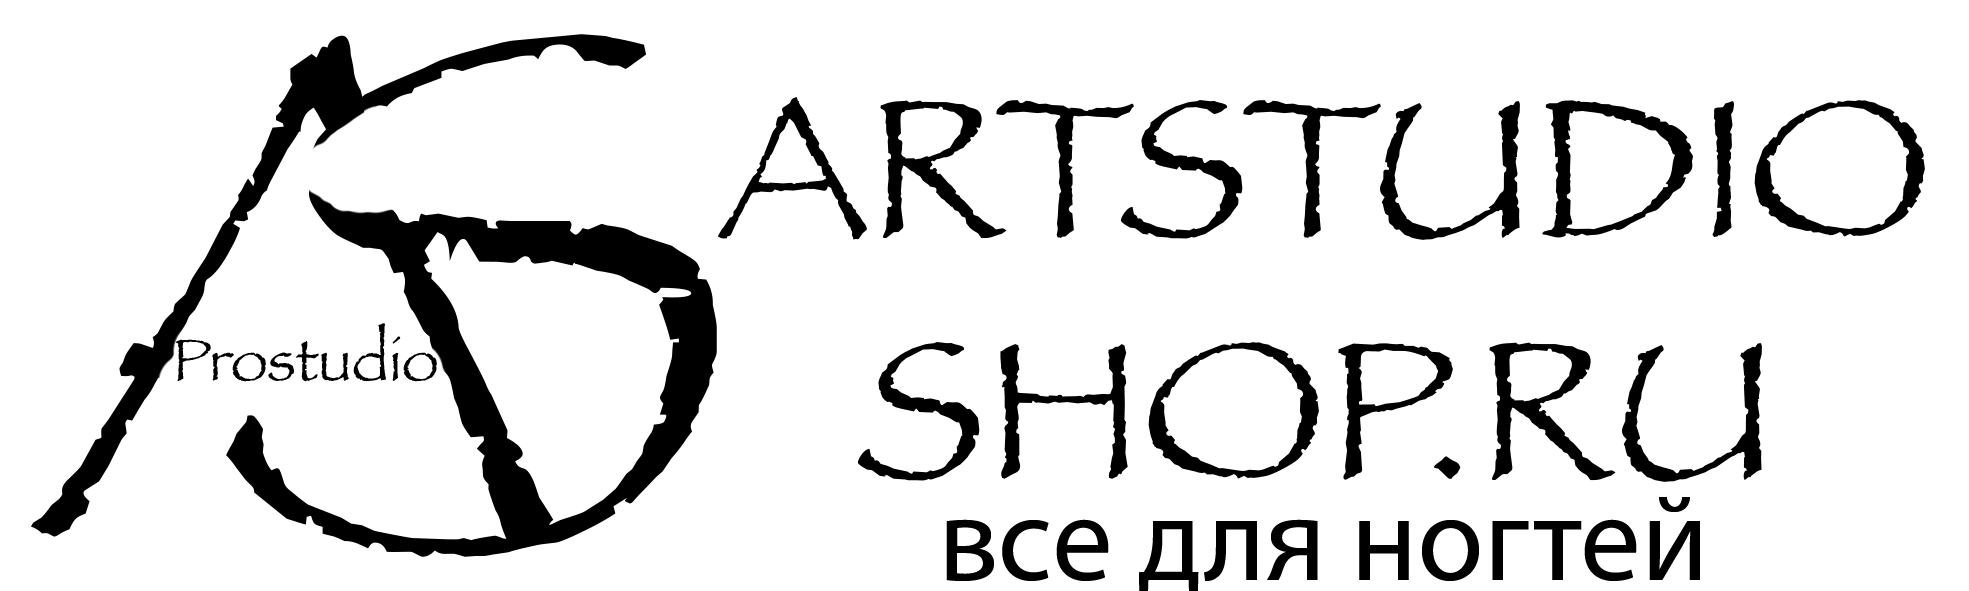 Artstudio-shop.ru